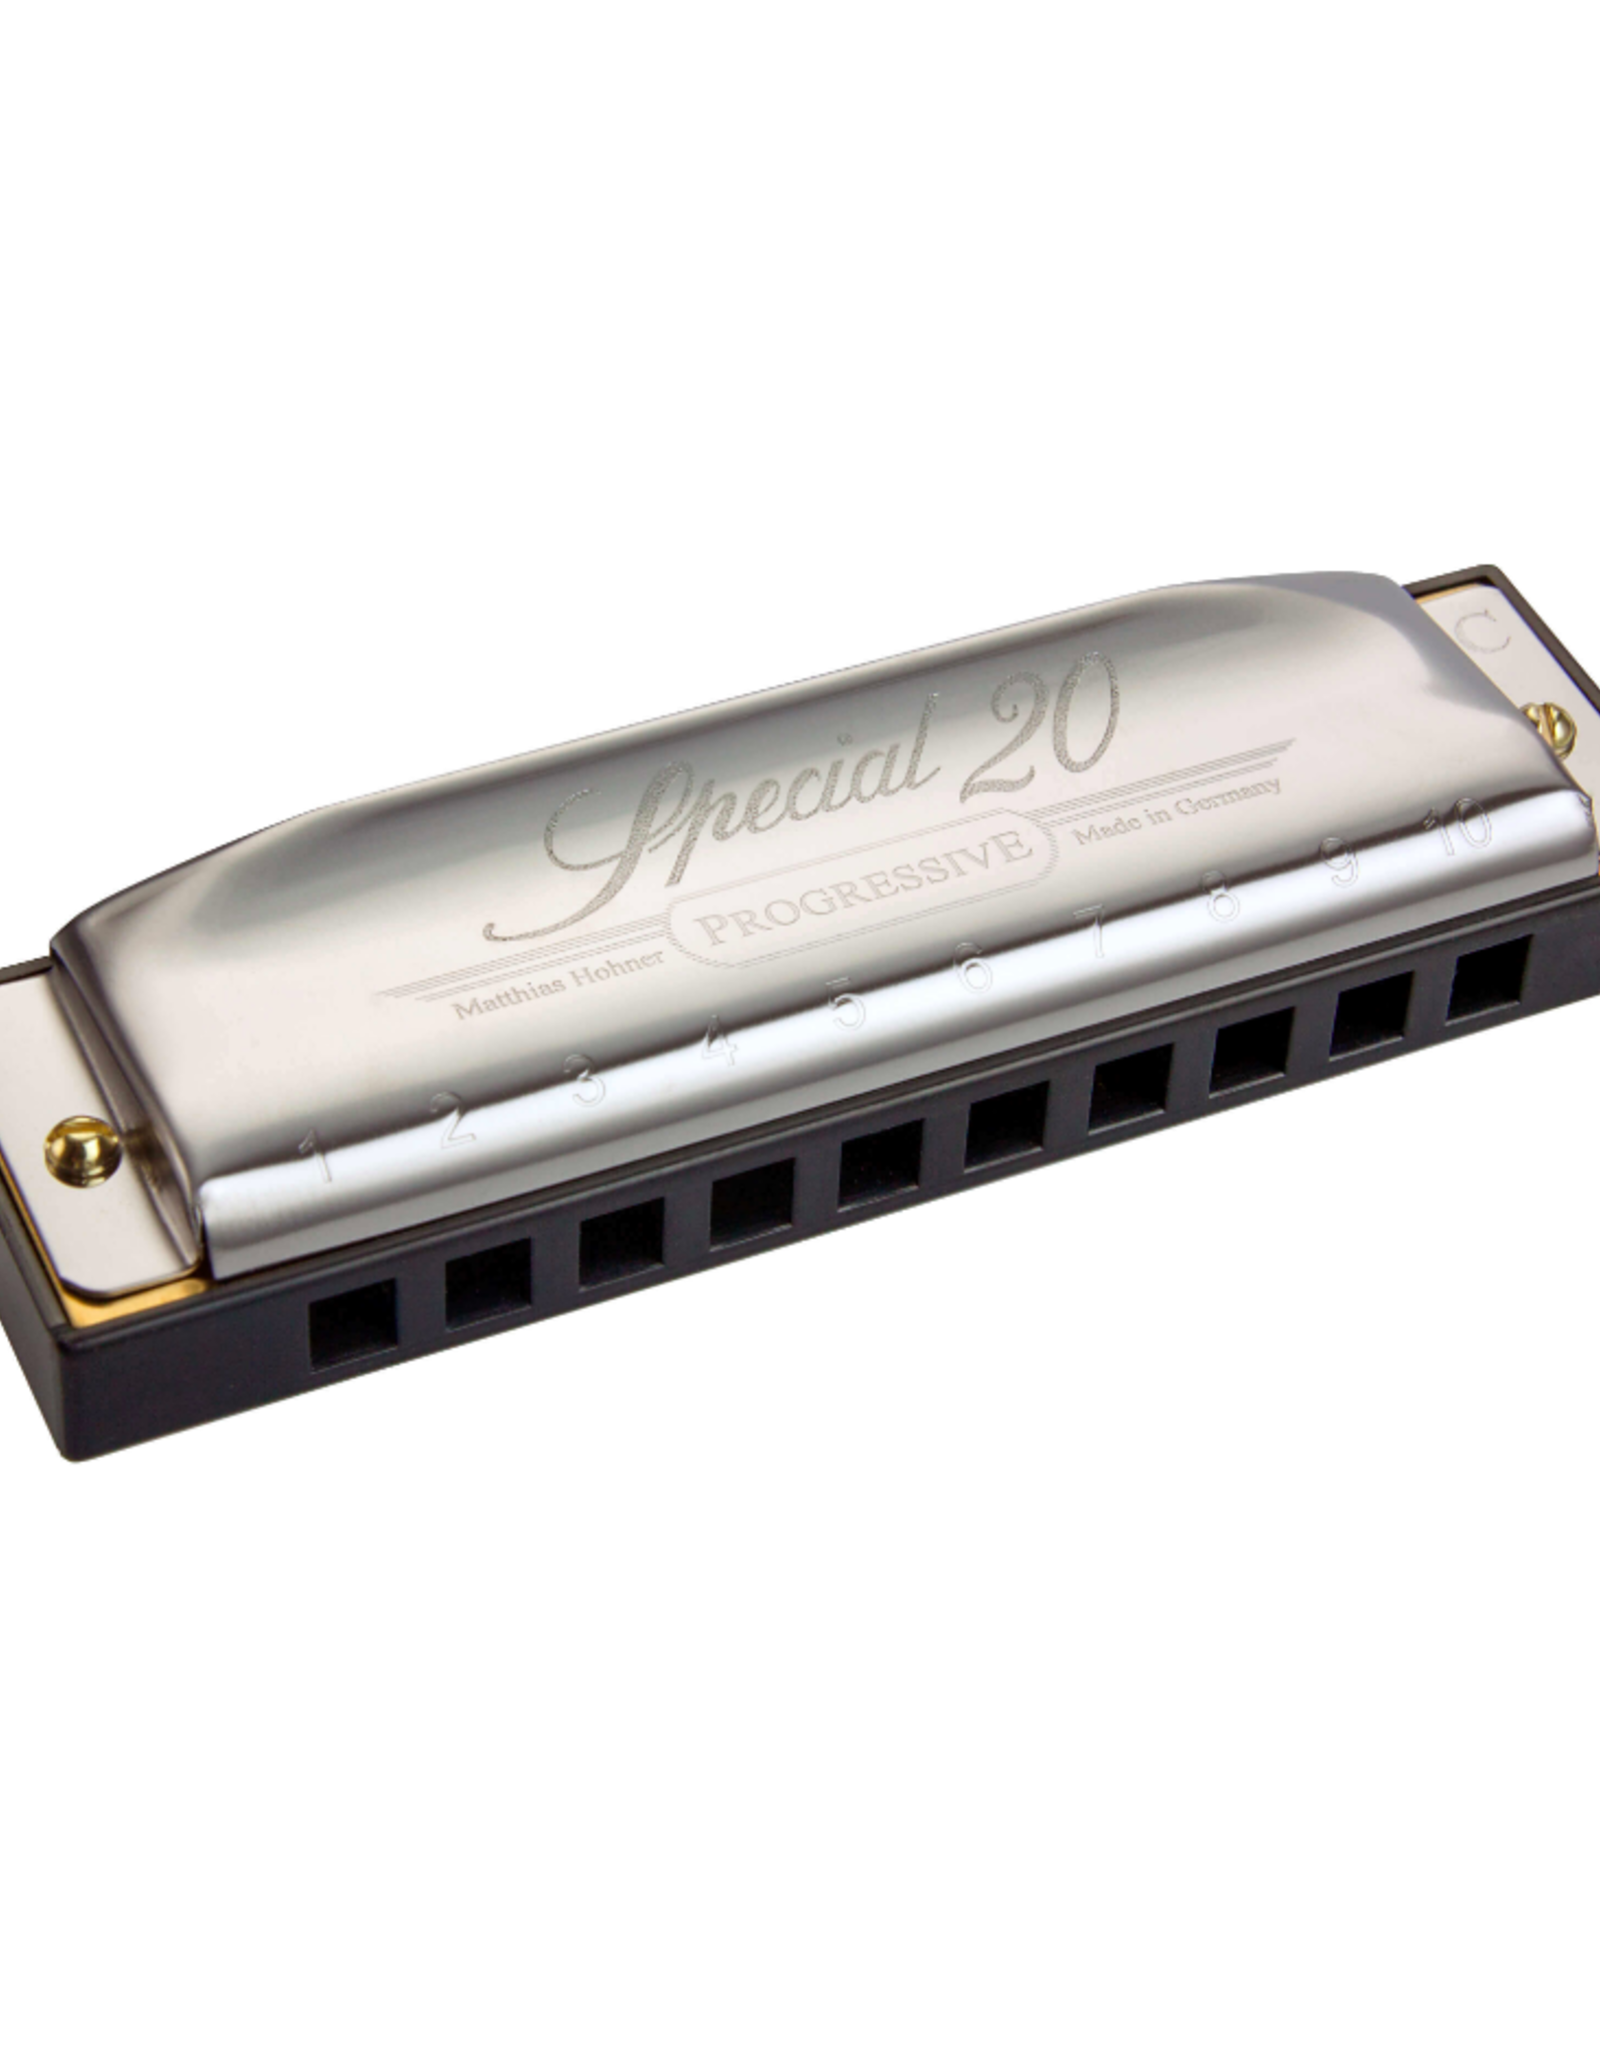 Hohner Hohner Special 20 Harmonica C